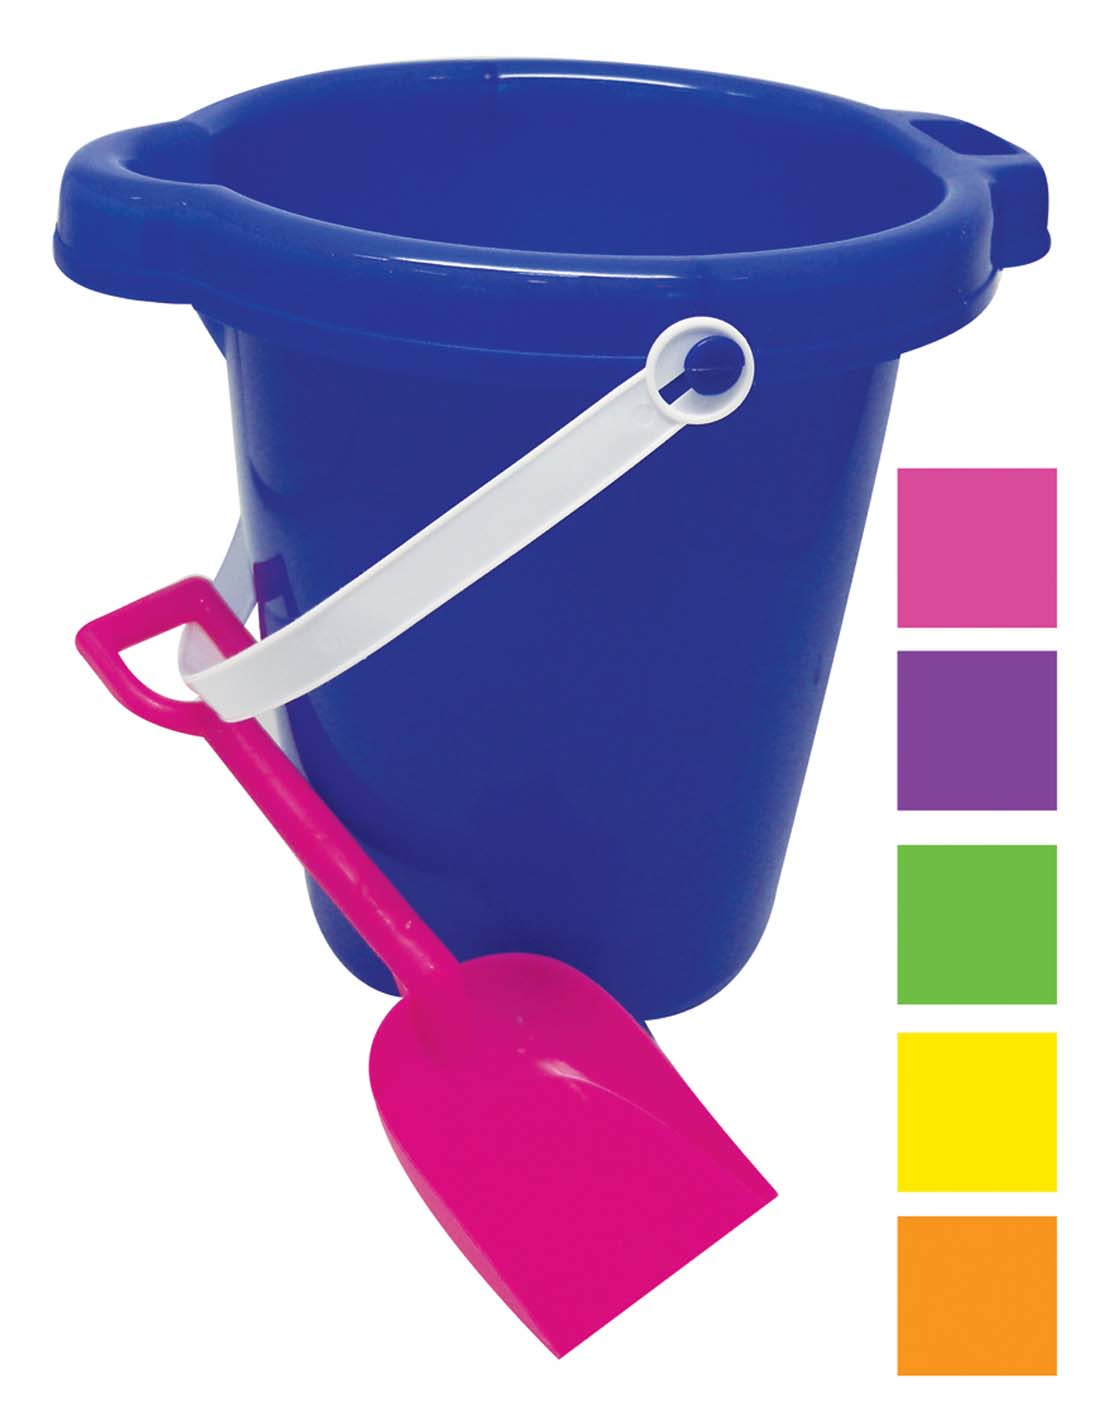 View BEACH PAIL 7 INCH WITH SHOVEL & SPOUT ASSORTED COLORS